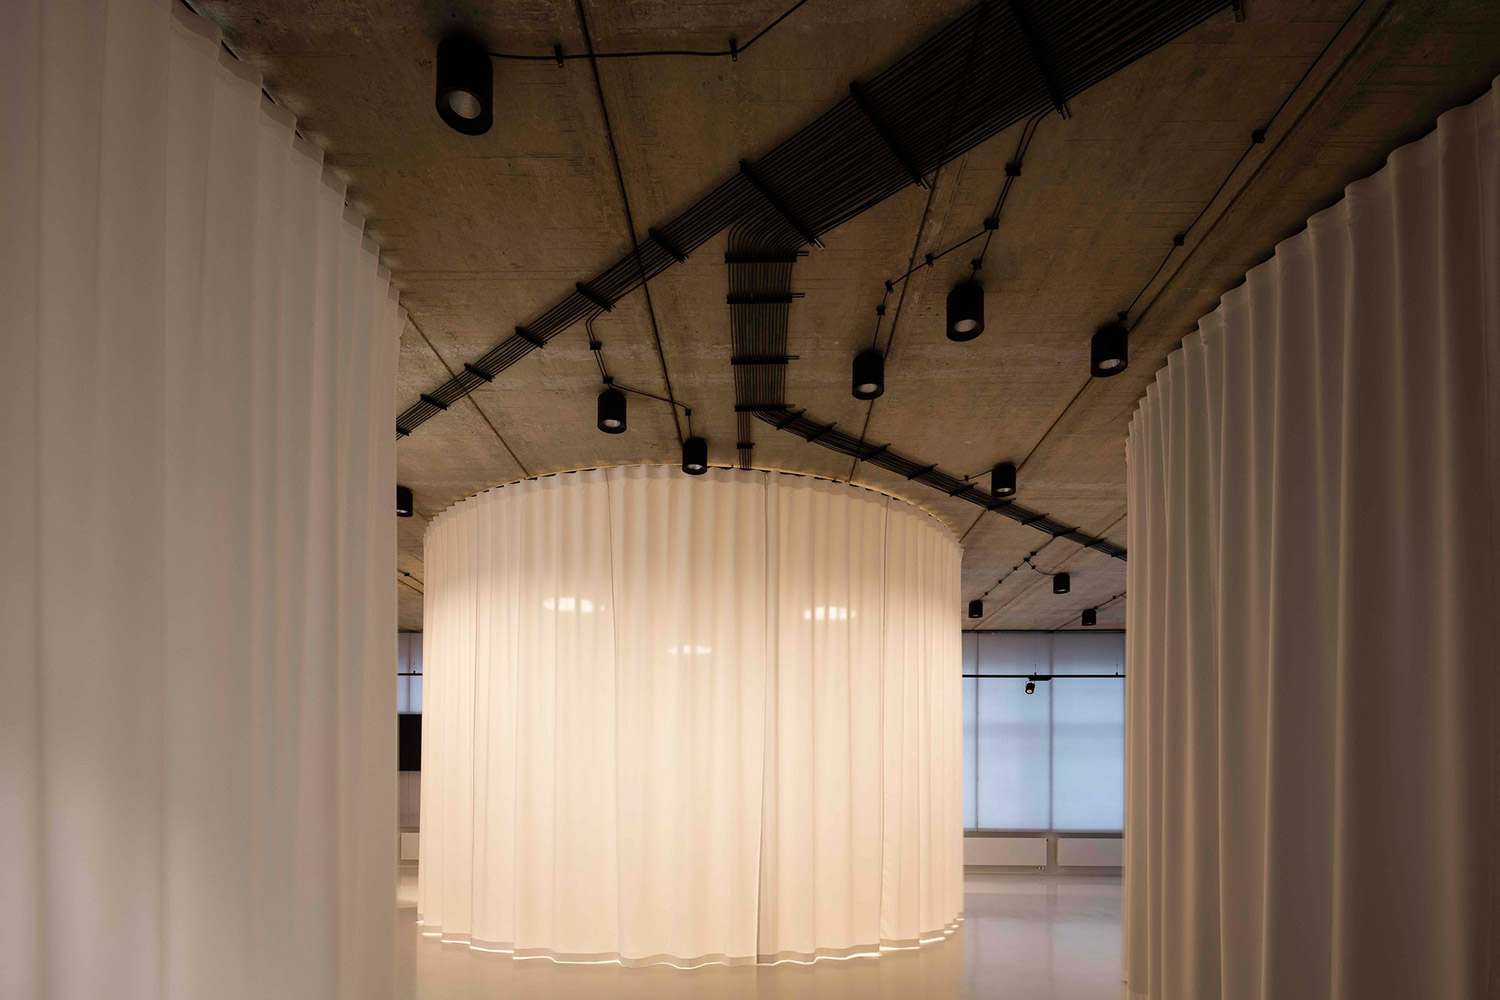 ignant-architecture-gallery-of-furniture-chybik-kristof-07